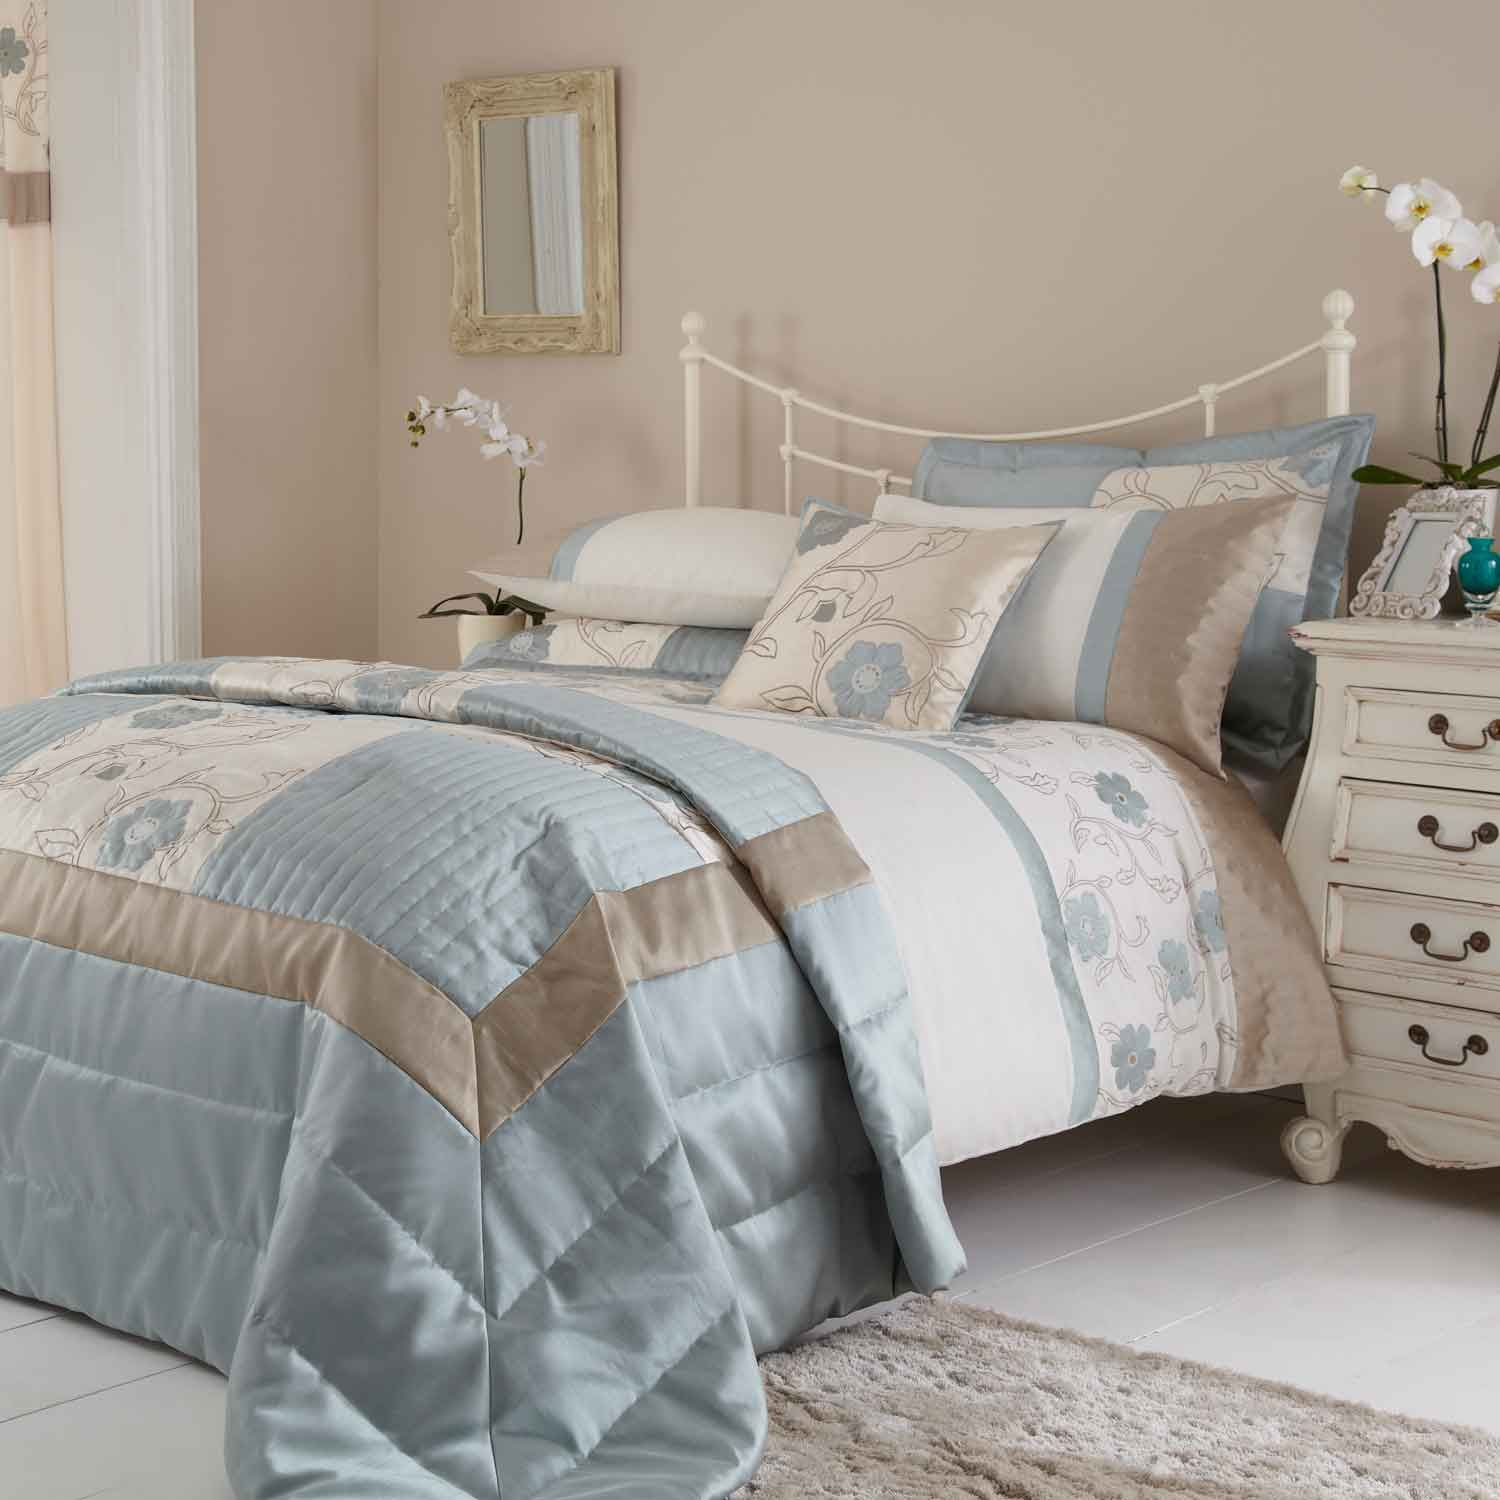 Interior Of Bedroom Wall Duck Egg Blue Bedroom Pictures Bedroom With Single Bed Bedroom Curtains Uk: Duck Egg Blue And Brown Bedding For Couple Bedroom